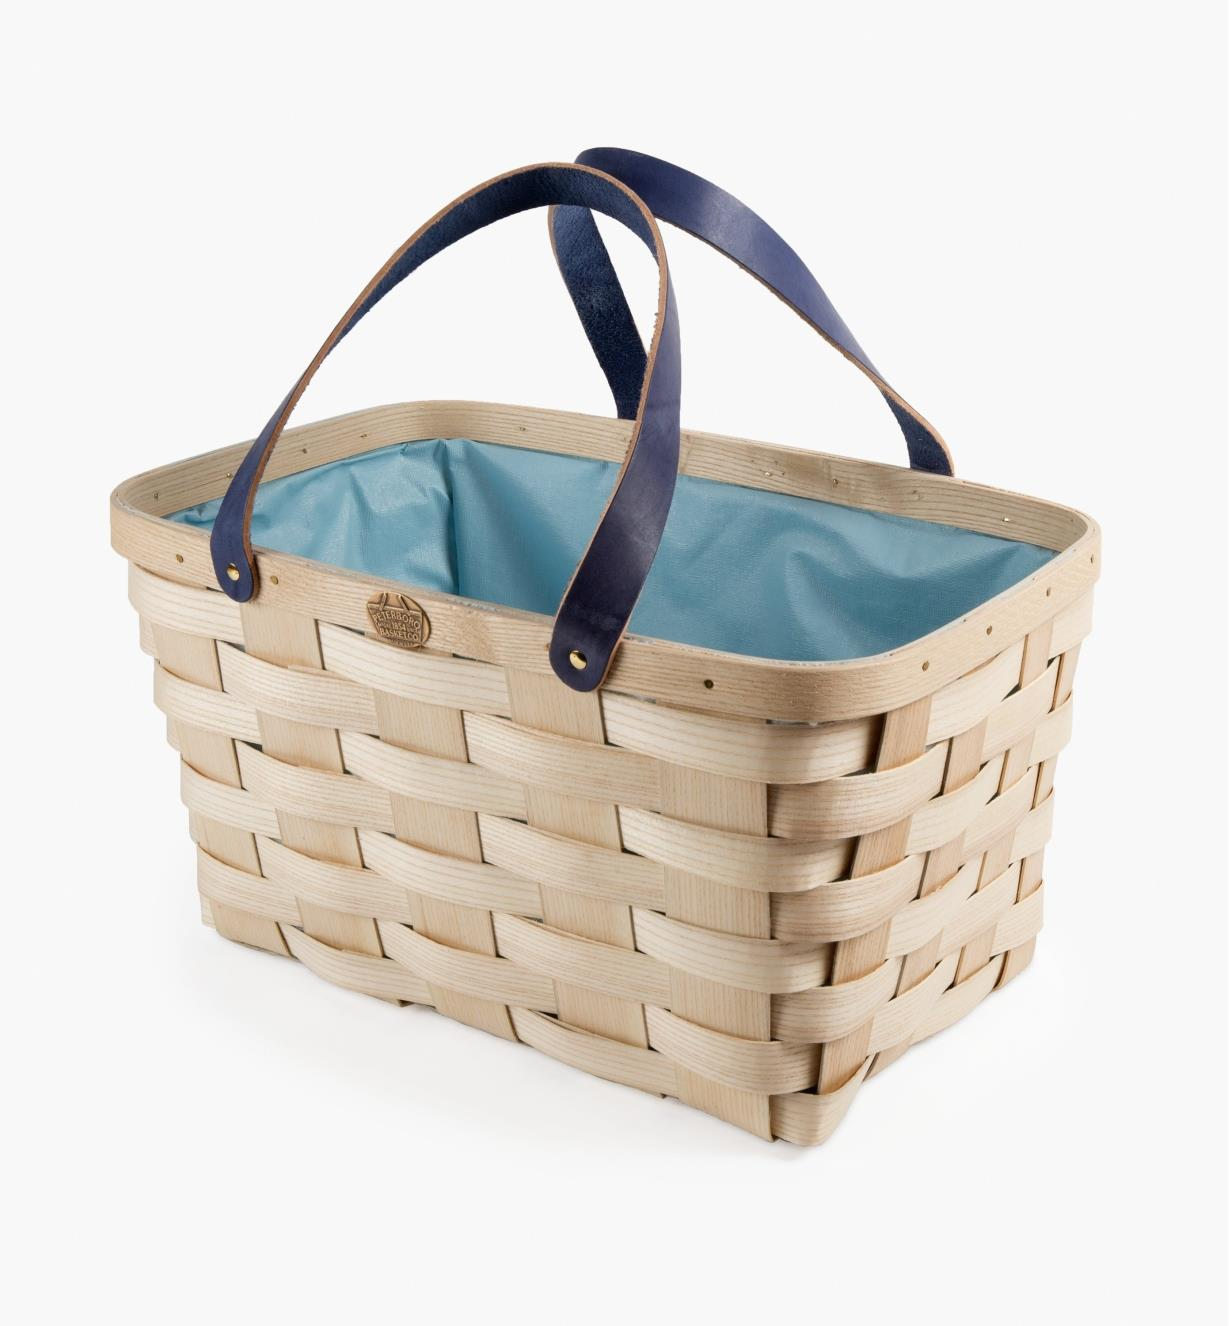 WT680 - Handwoven Basket Tote